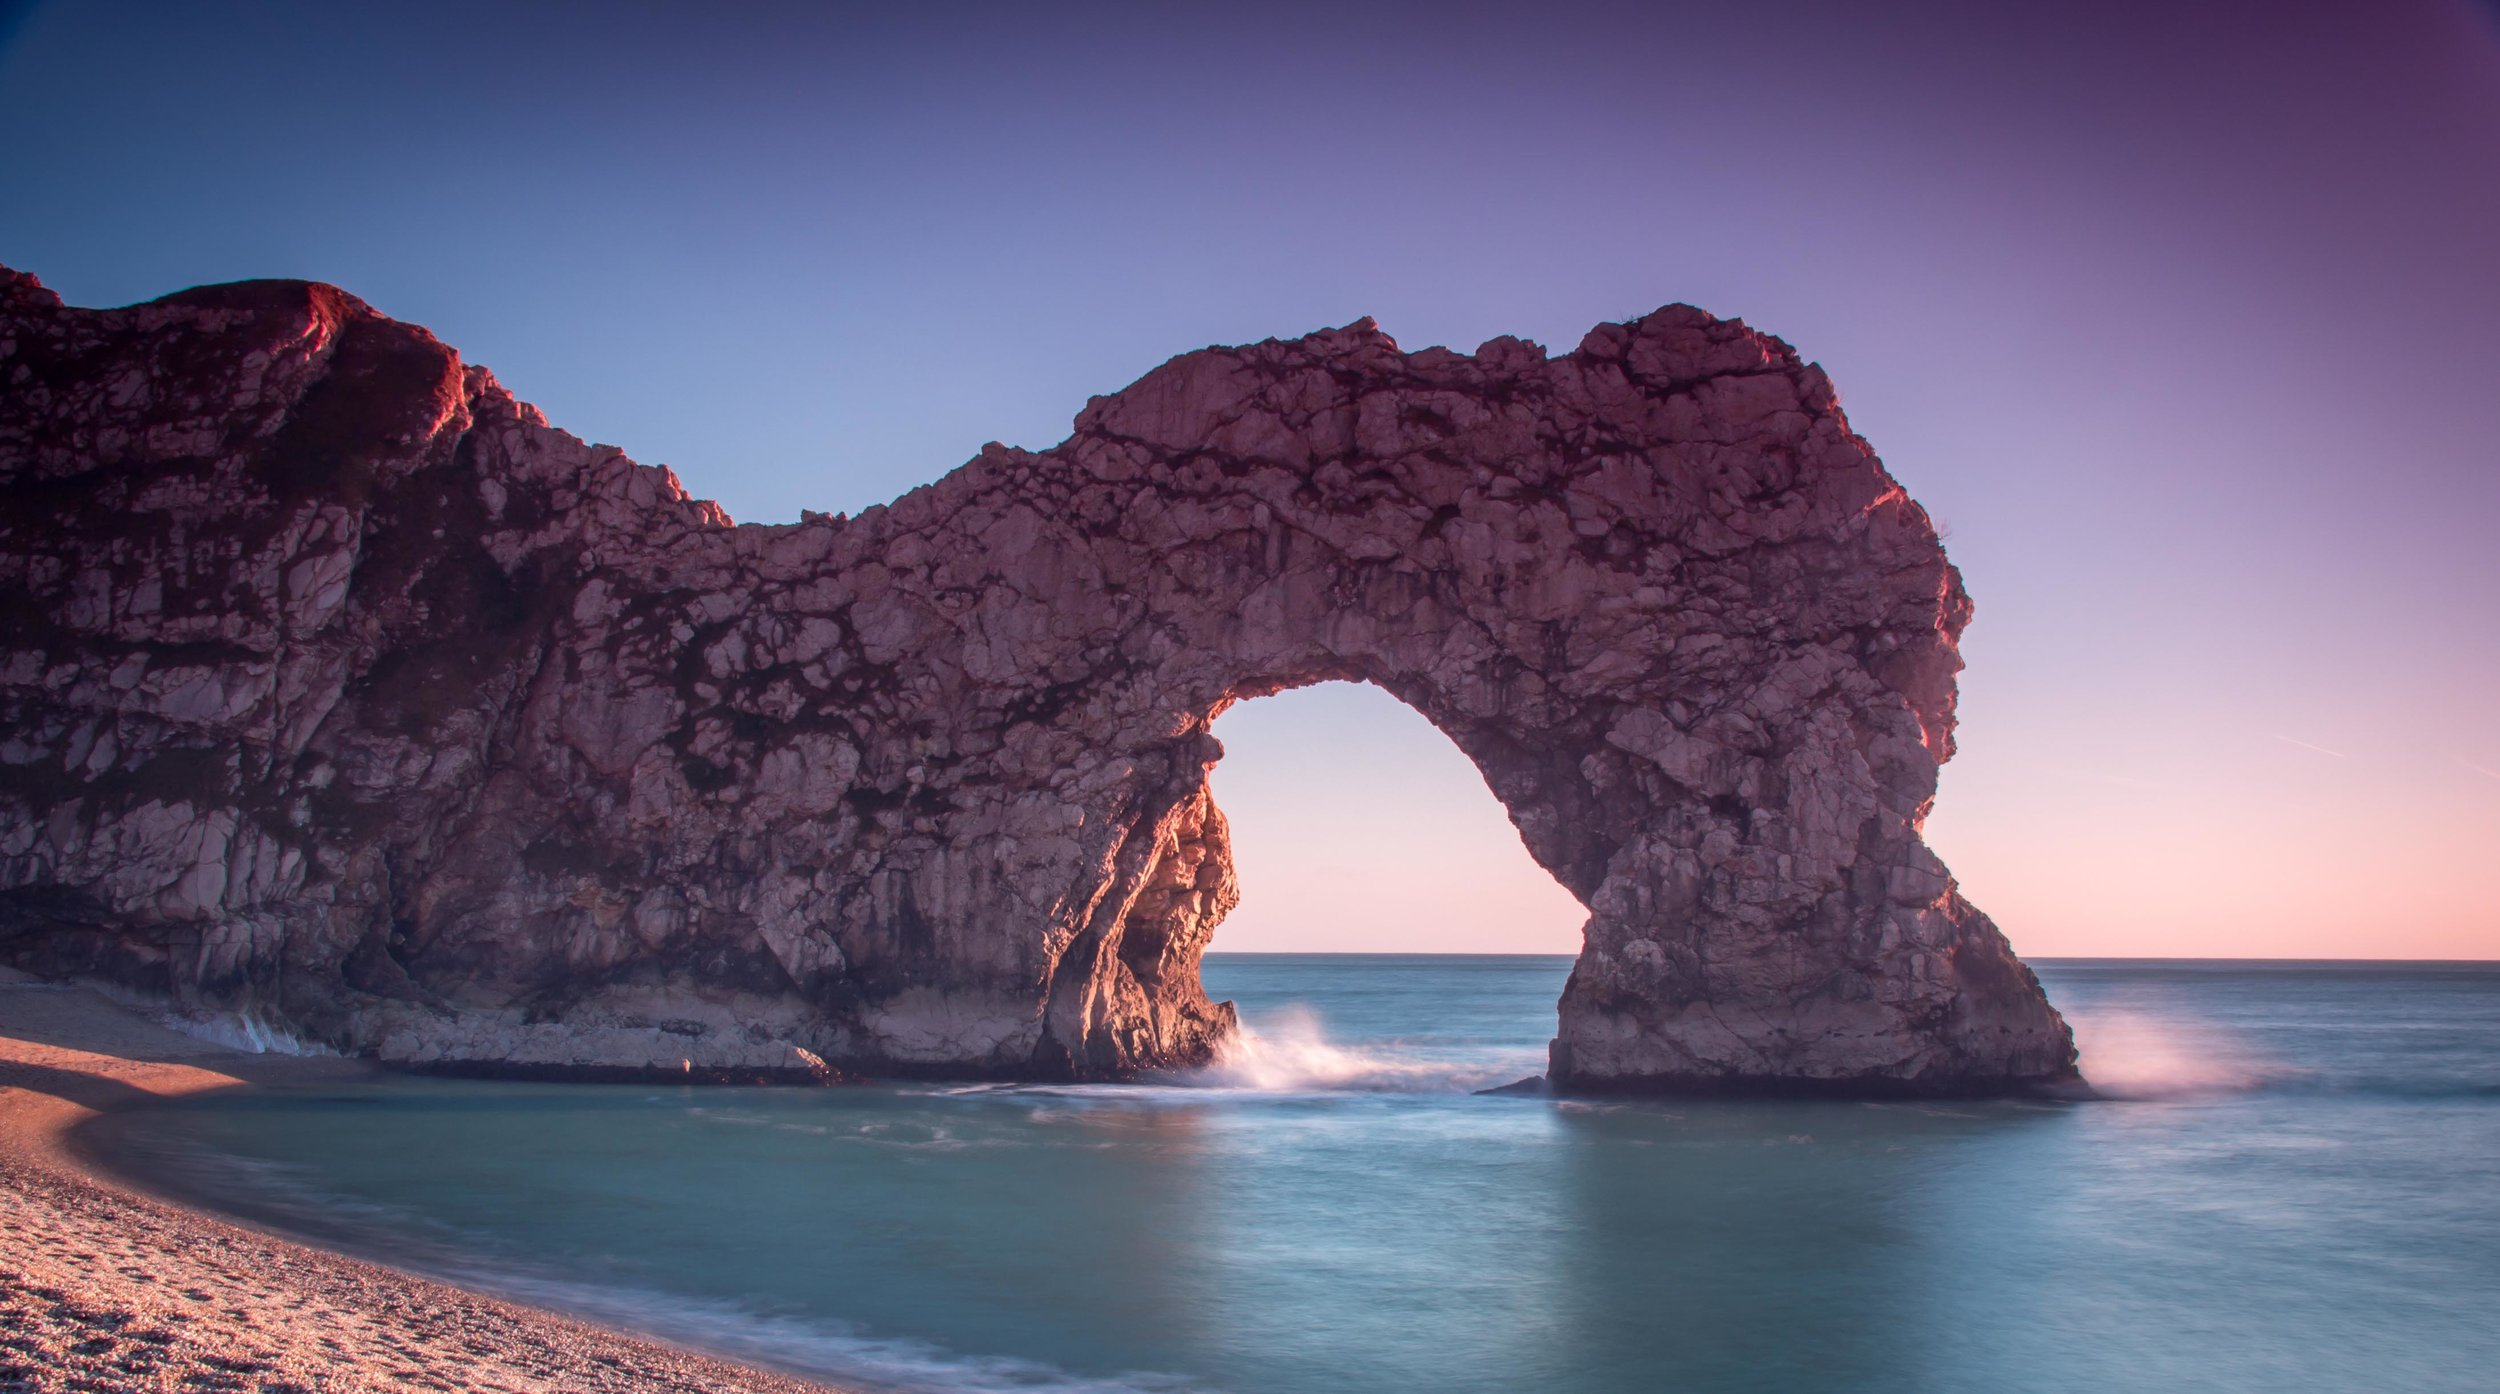 Durdle_Door-3.jpg